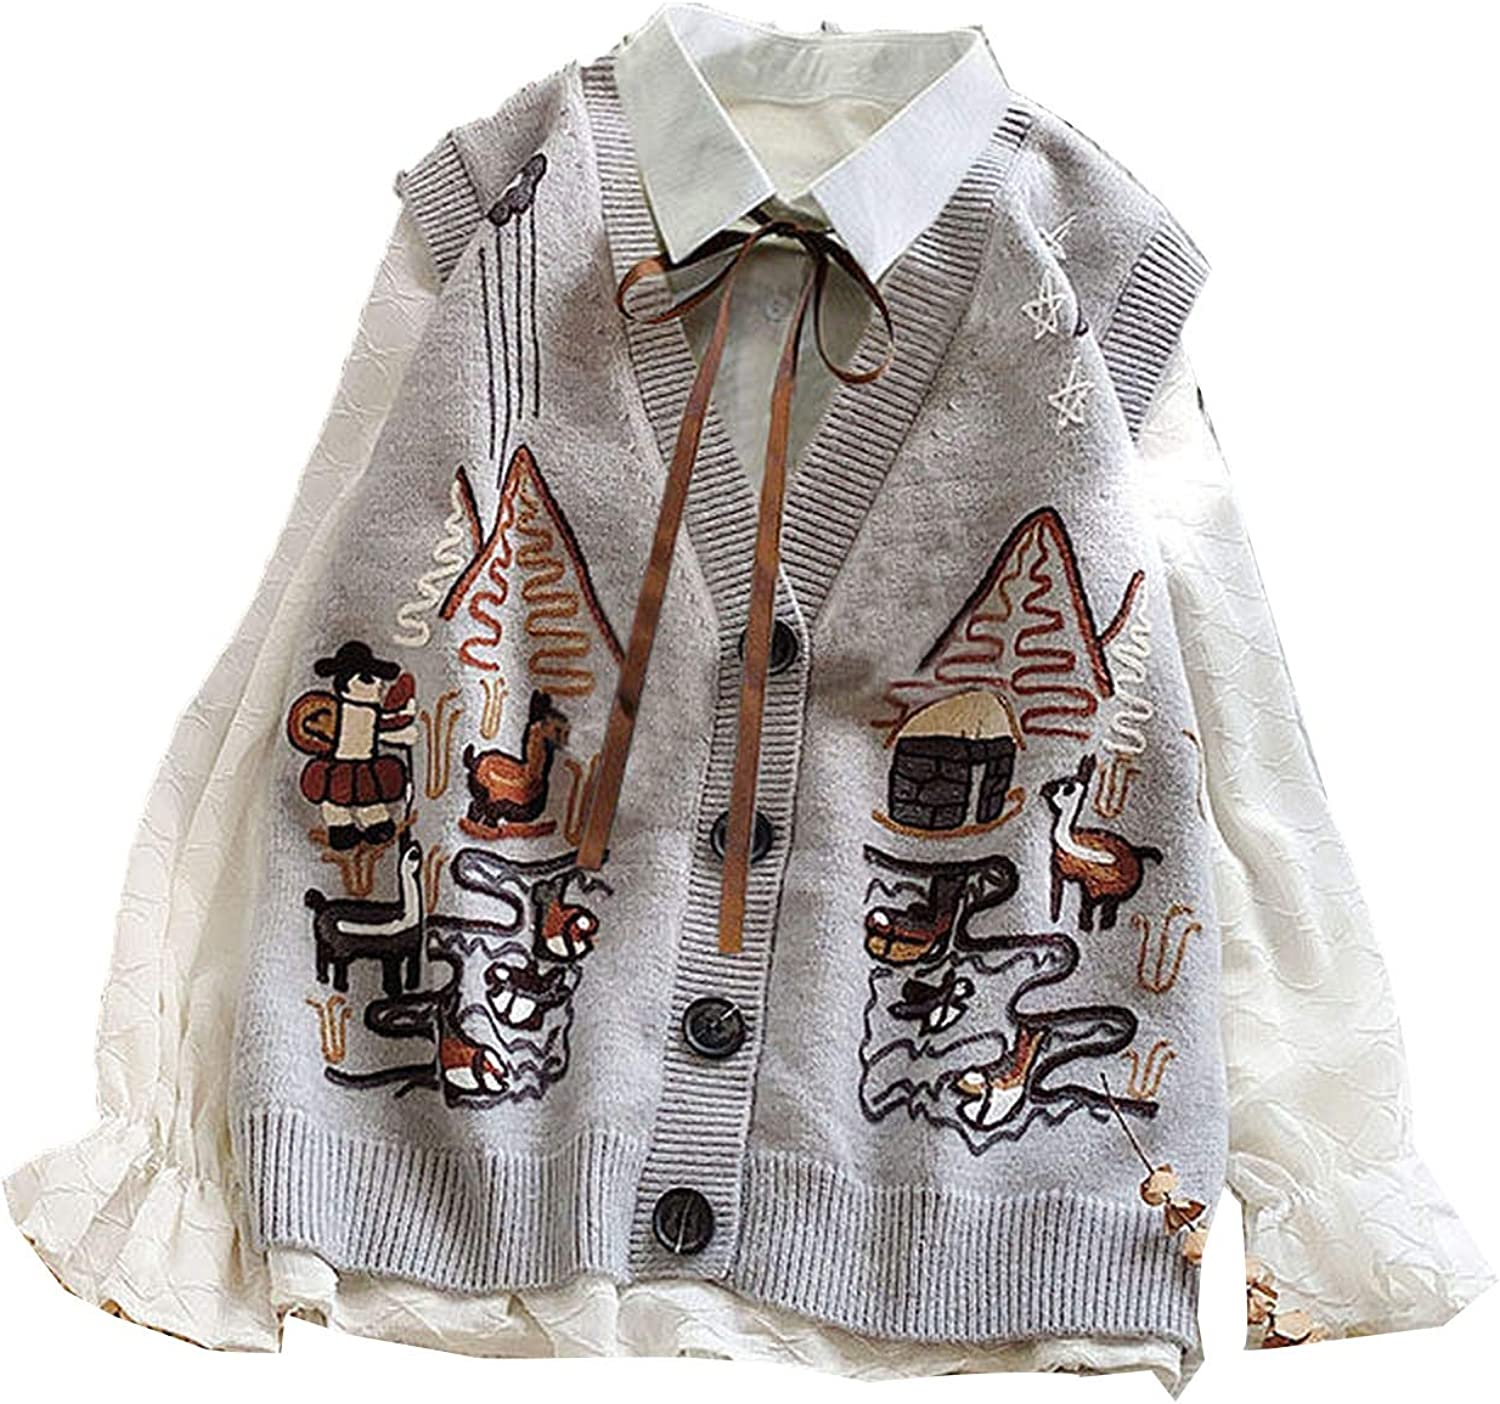 Everybody Let's Rock Sweater Vest Women Chic Trendy Clothes Popular Autumn Sleeveless Knitwear